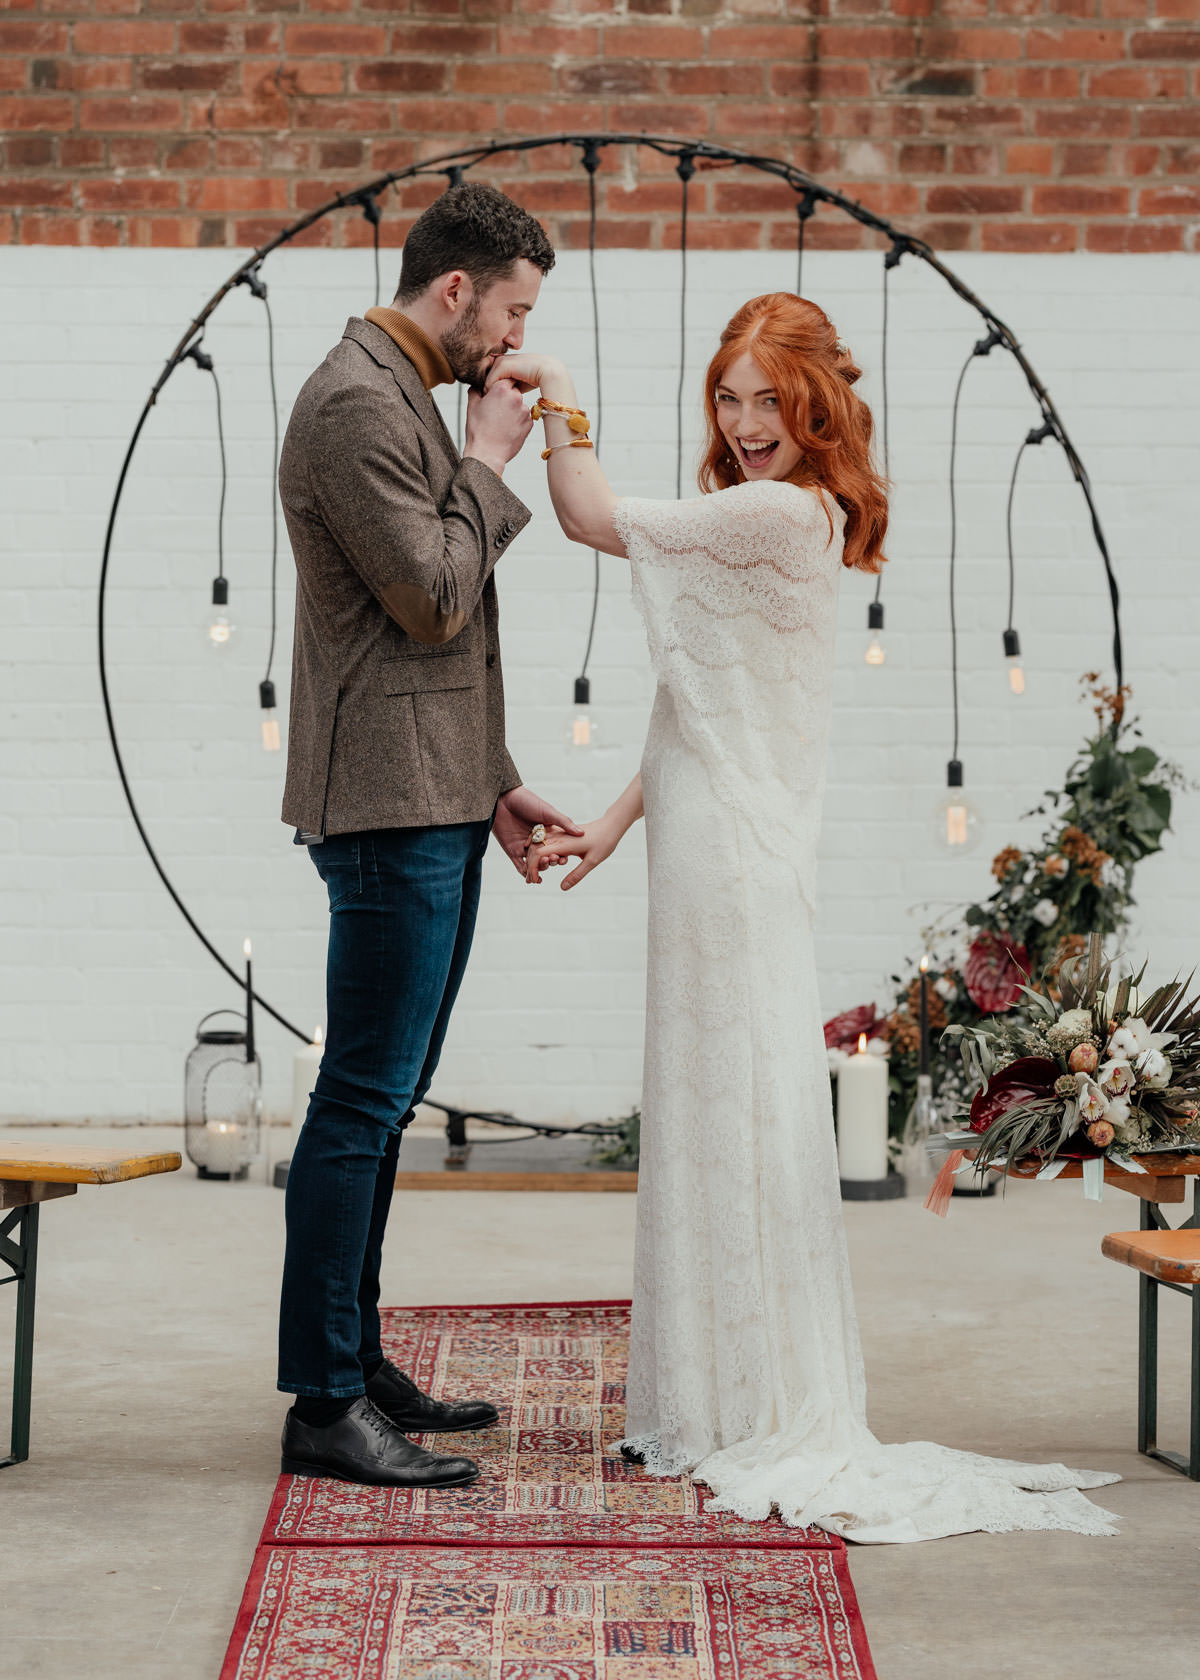 Industrial Meets Boho Wedding Inspiration: Just wed - pendant light ceremony backdrop